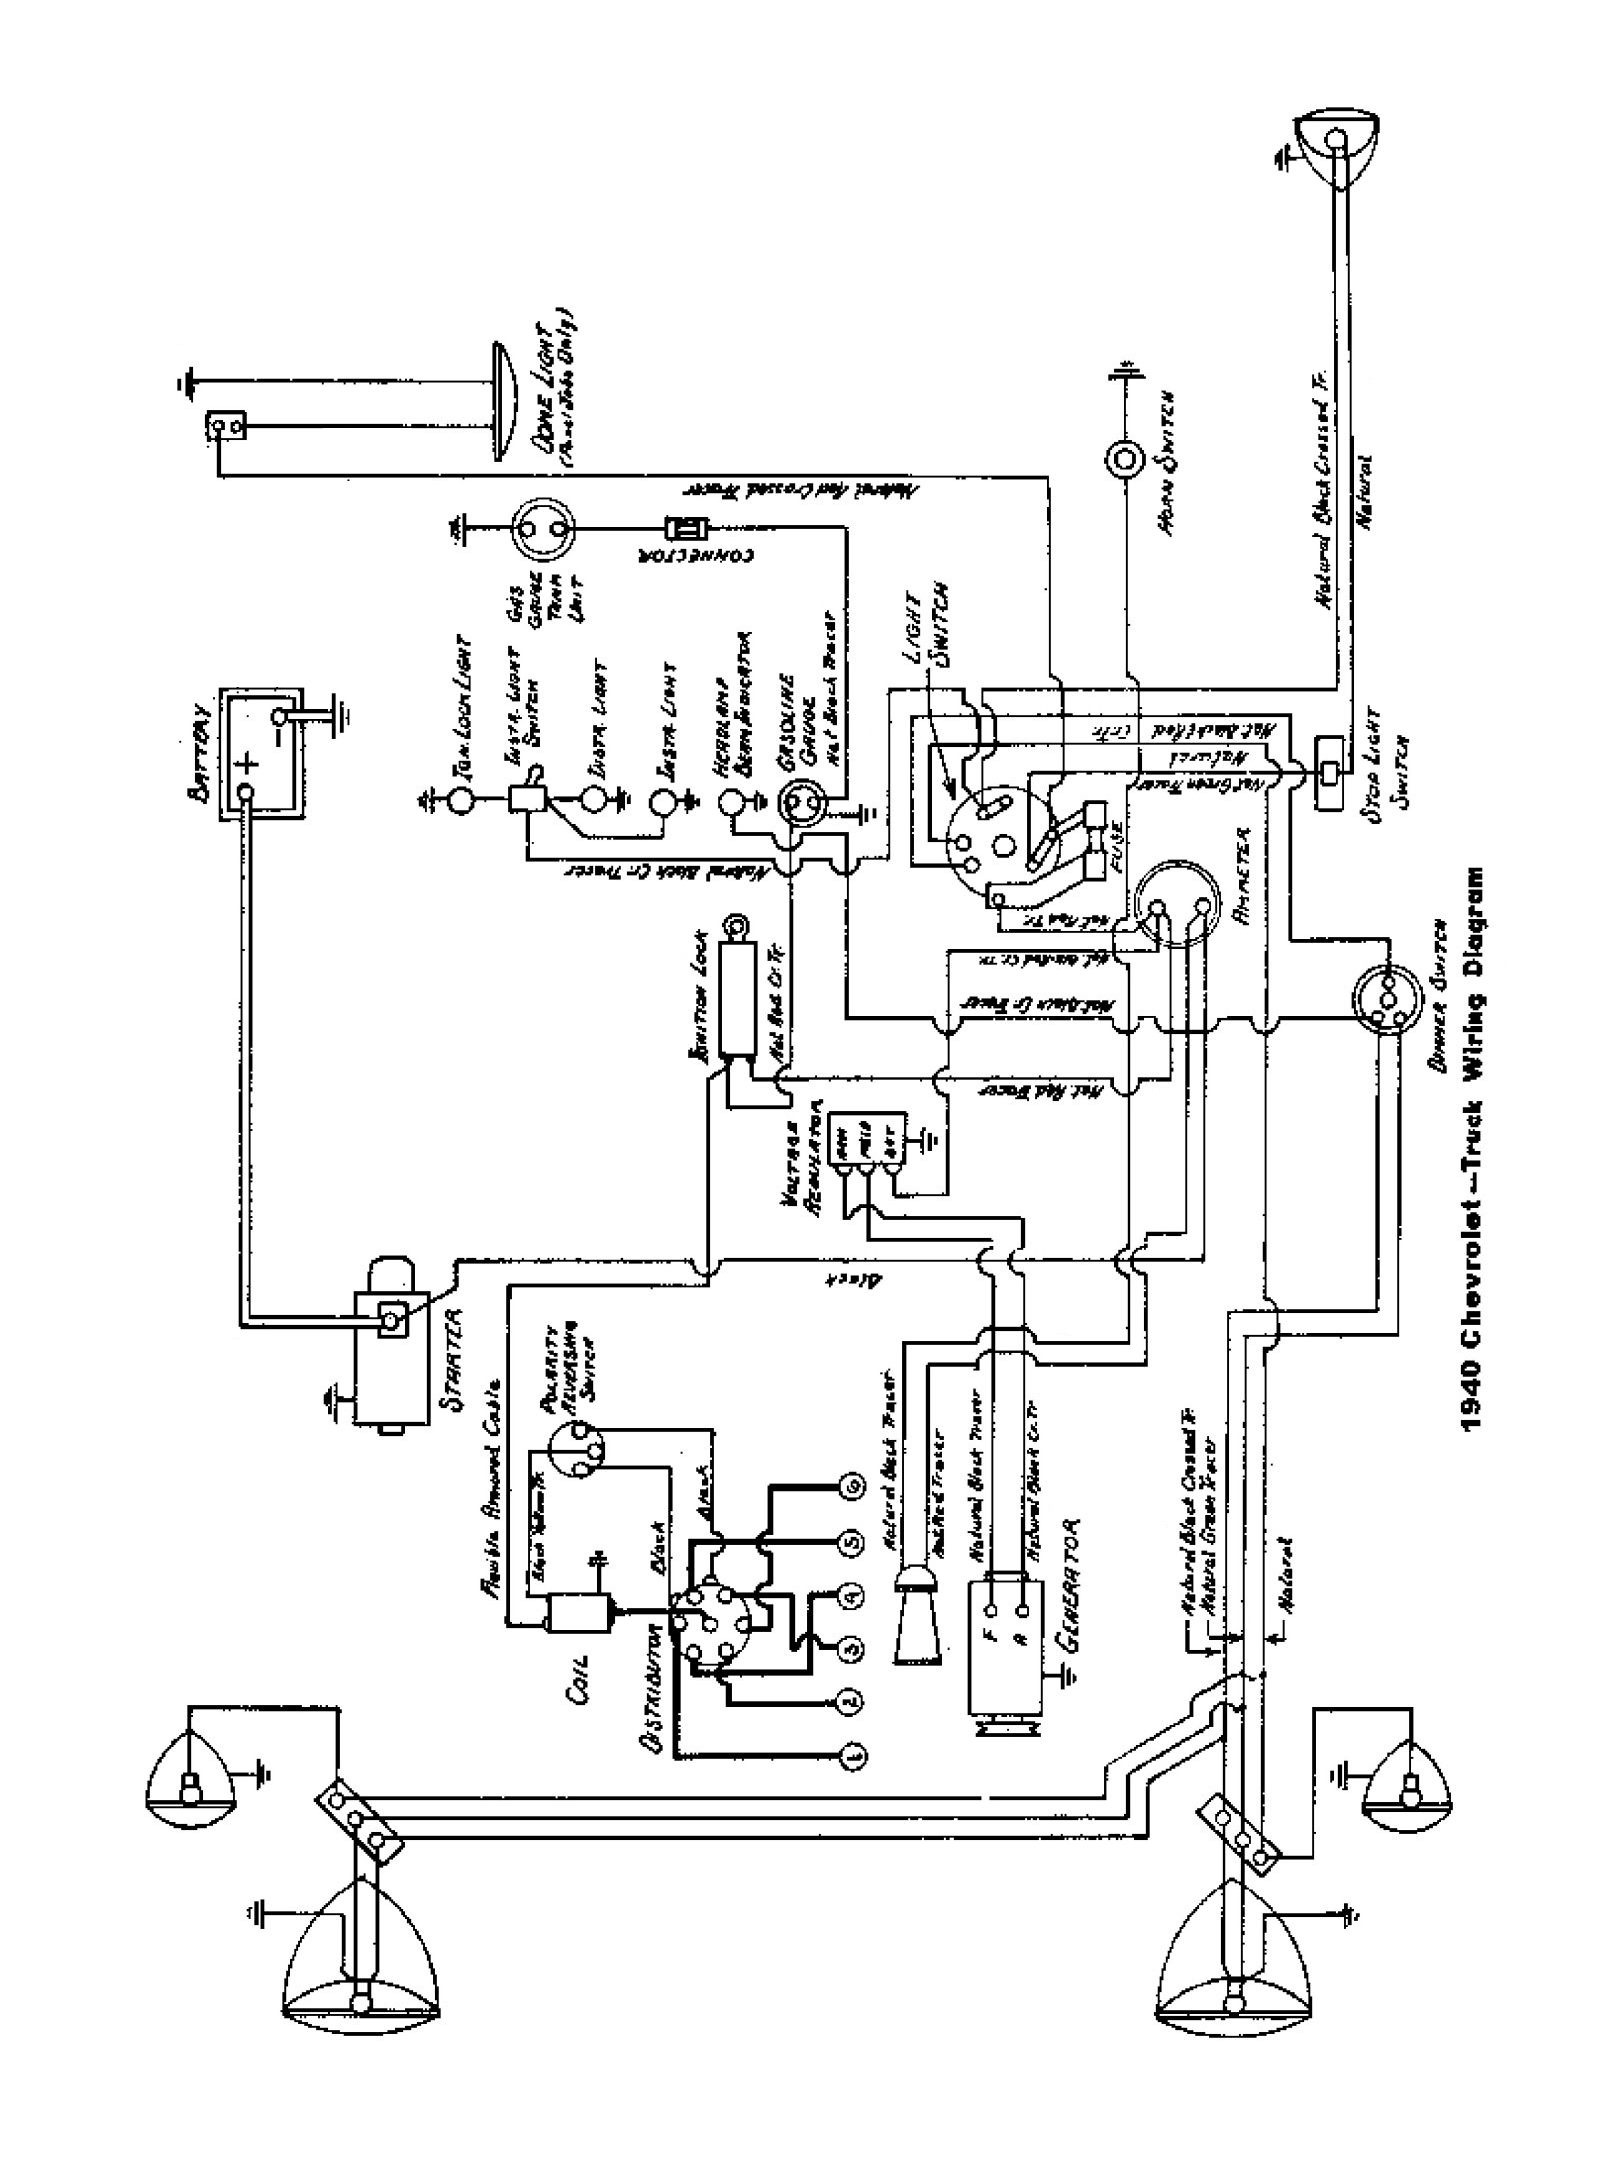 1959 chevy ignition wiring wiring library diagram mega1959 chevy ignition wiring wiring diagrams update 1956 chevy horn wiring 1959 chevy ignition wiring